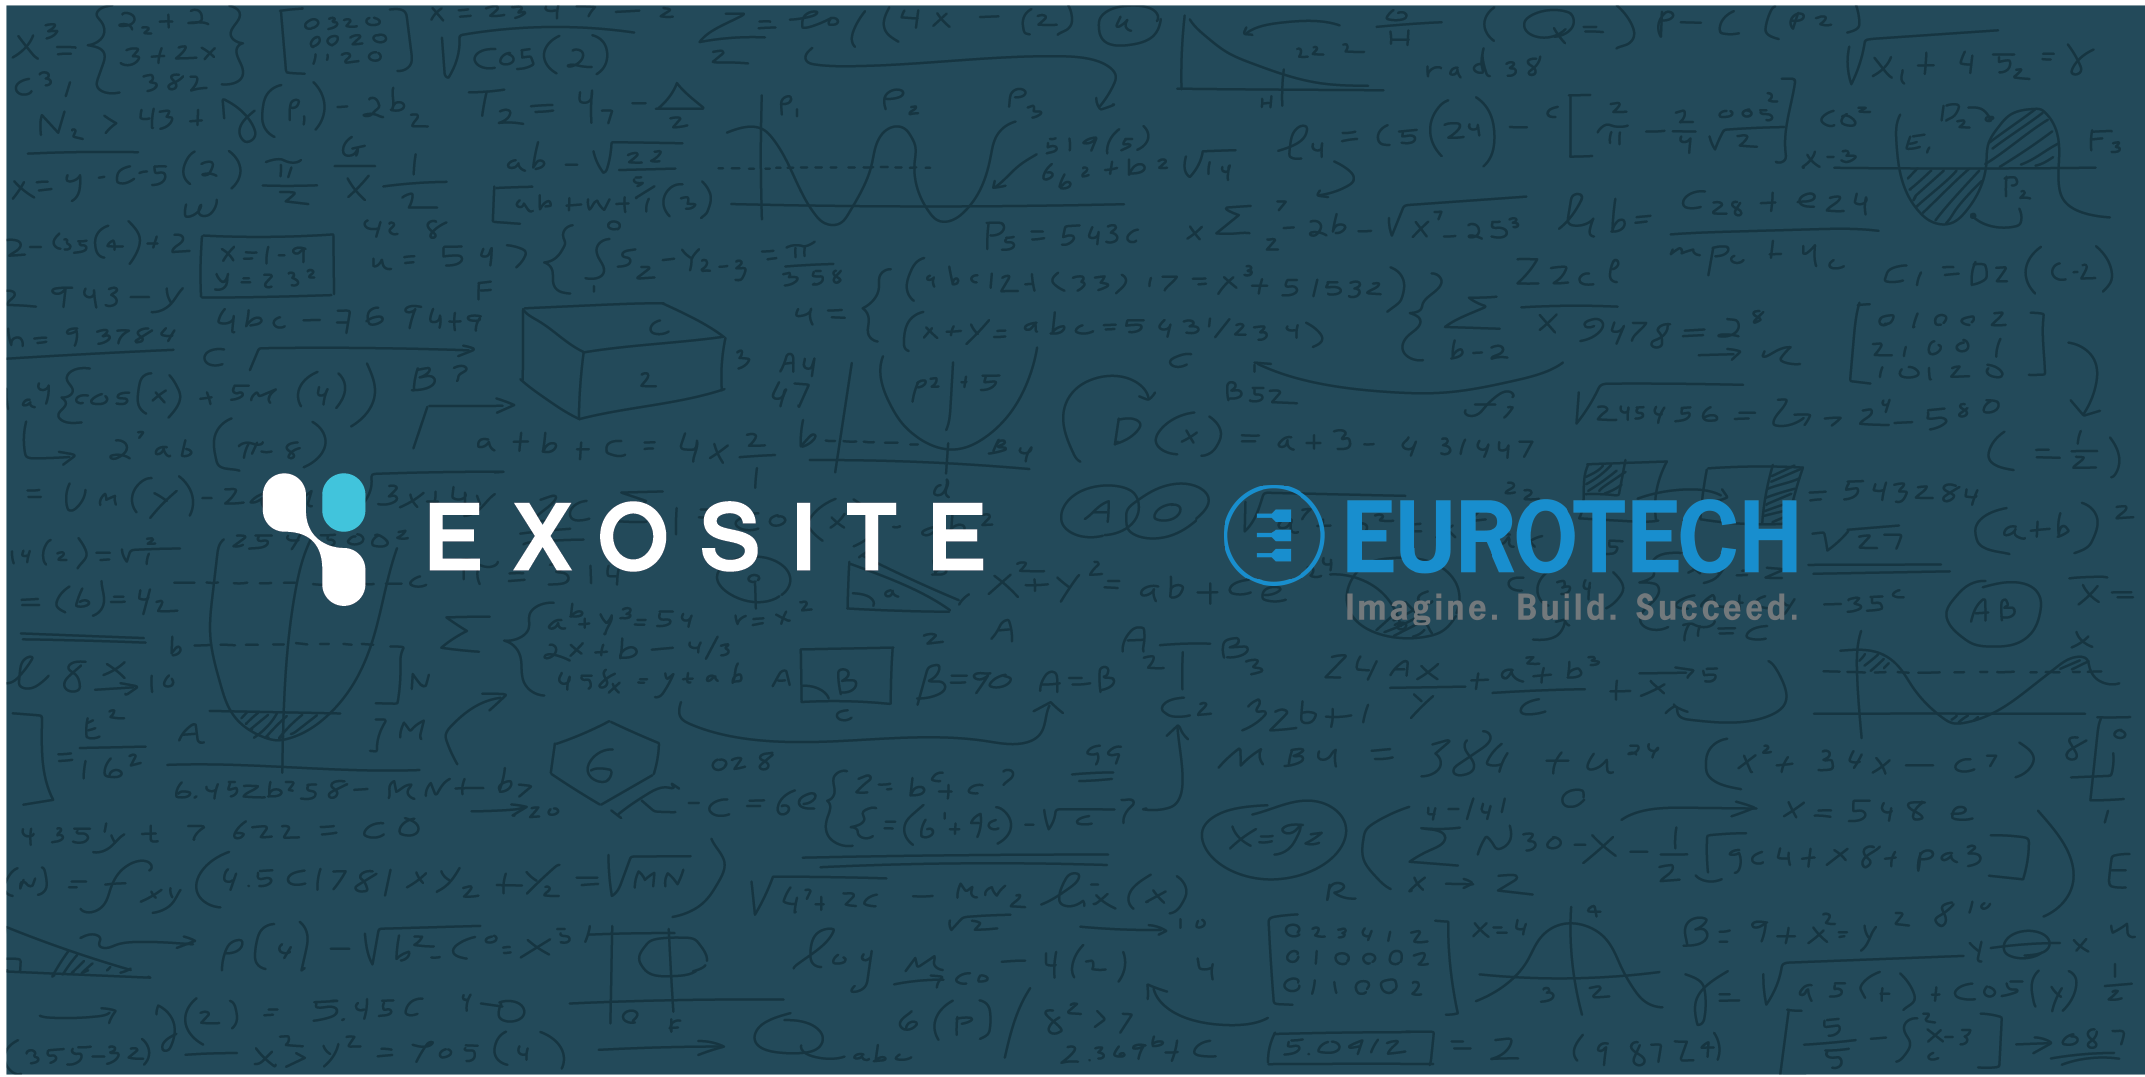 Exosite and Eurotech Announce Industrial IoT Technology Partnership to Provide Customers with Mission-Critical Insight into High-Value Assets